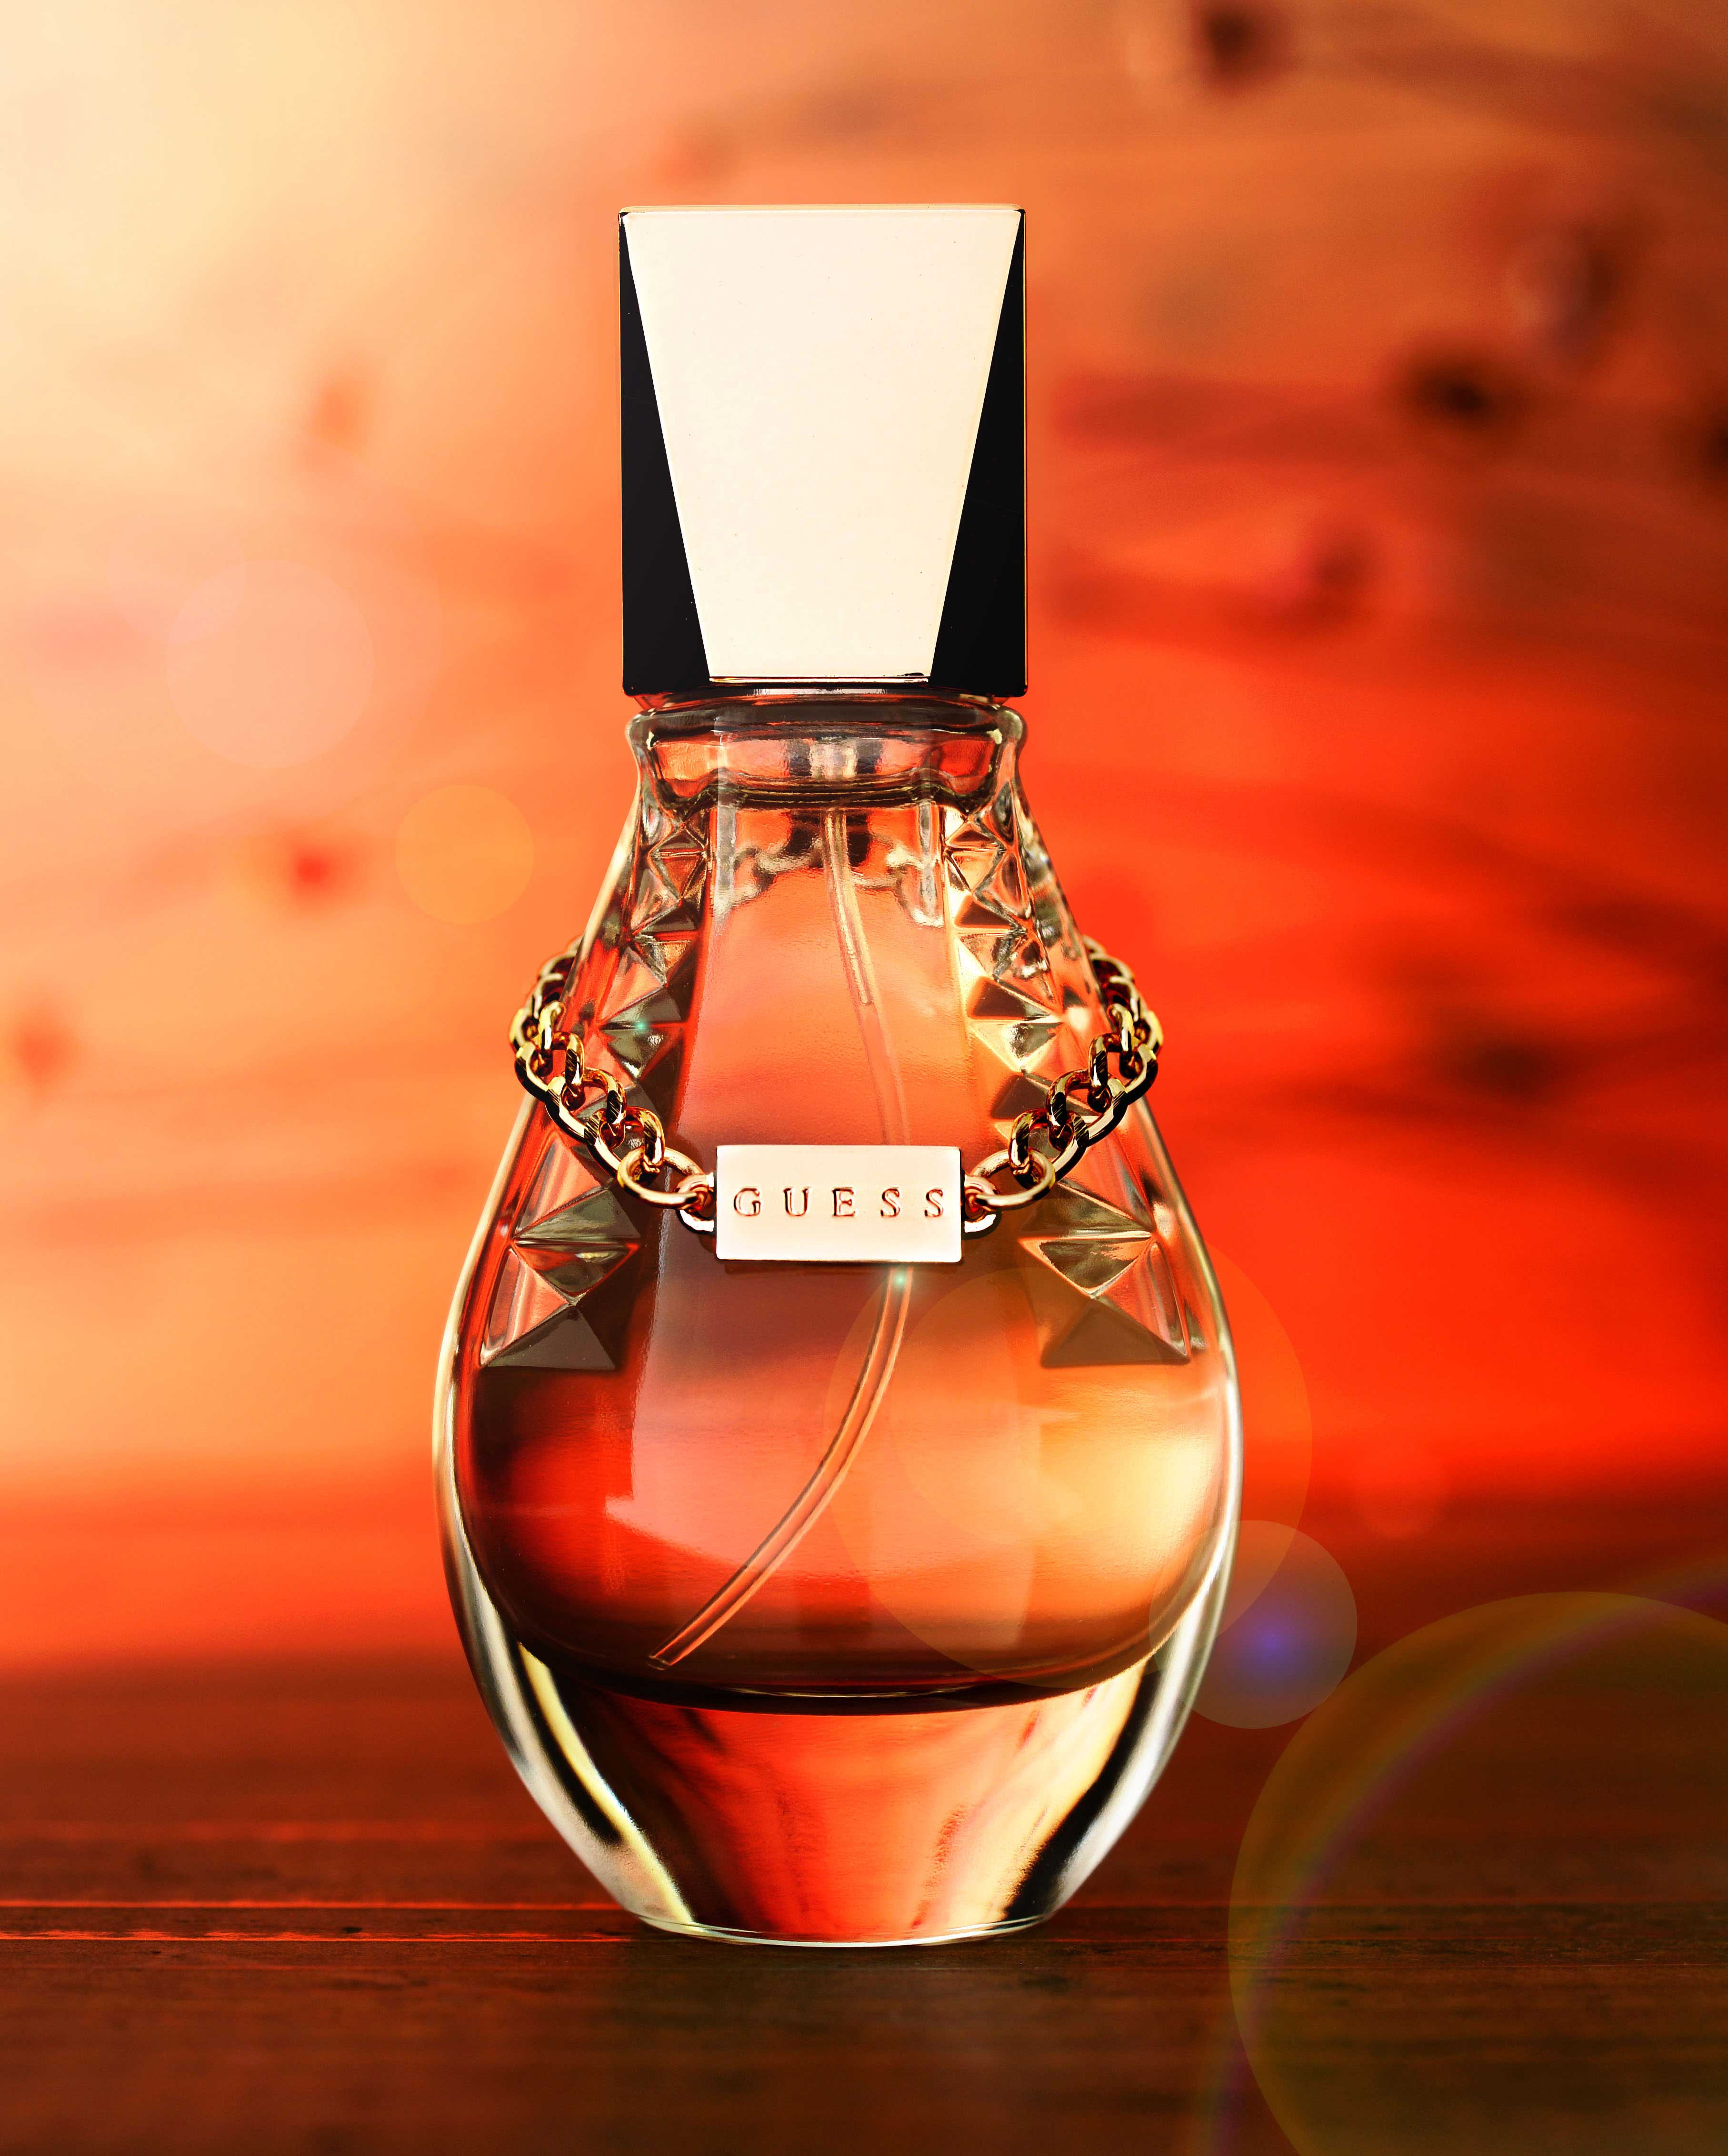 mike wepplo photoreal photography guess. perfume bottle